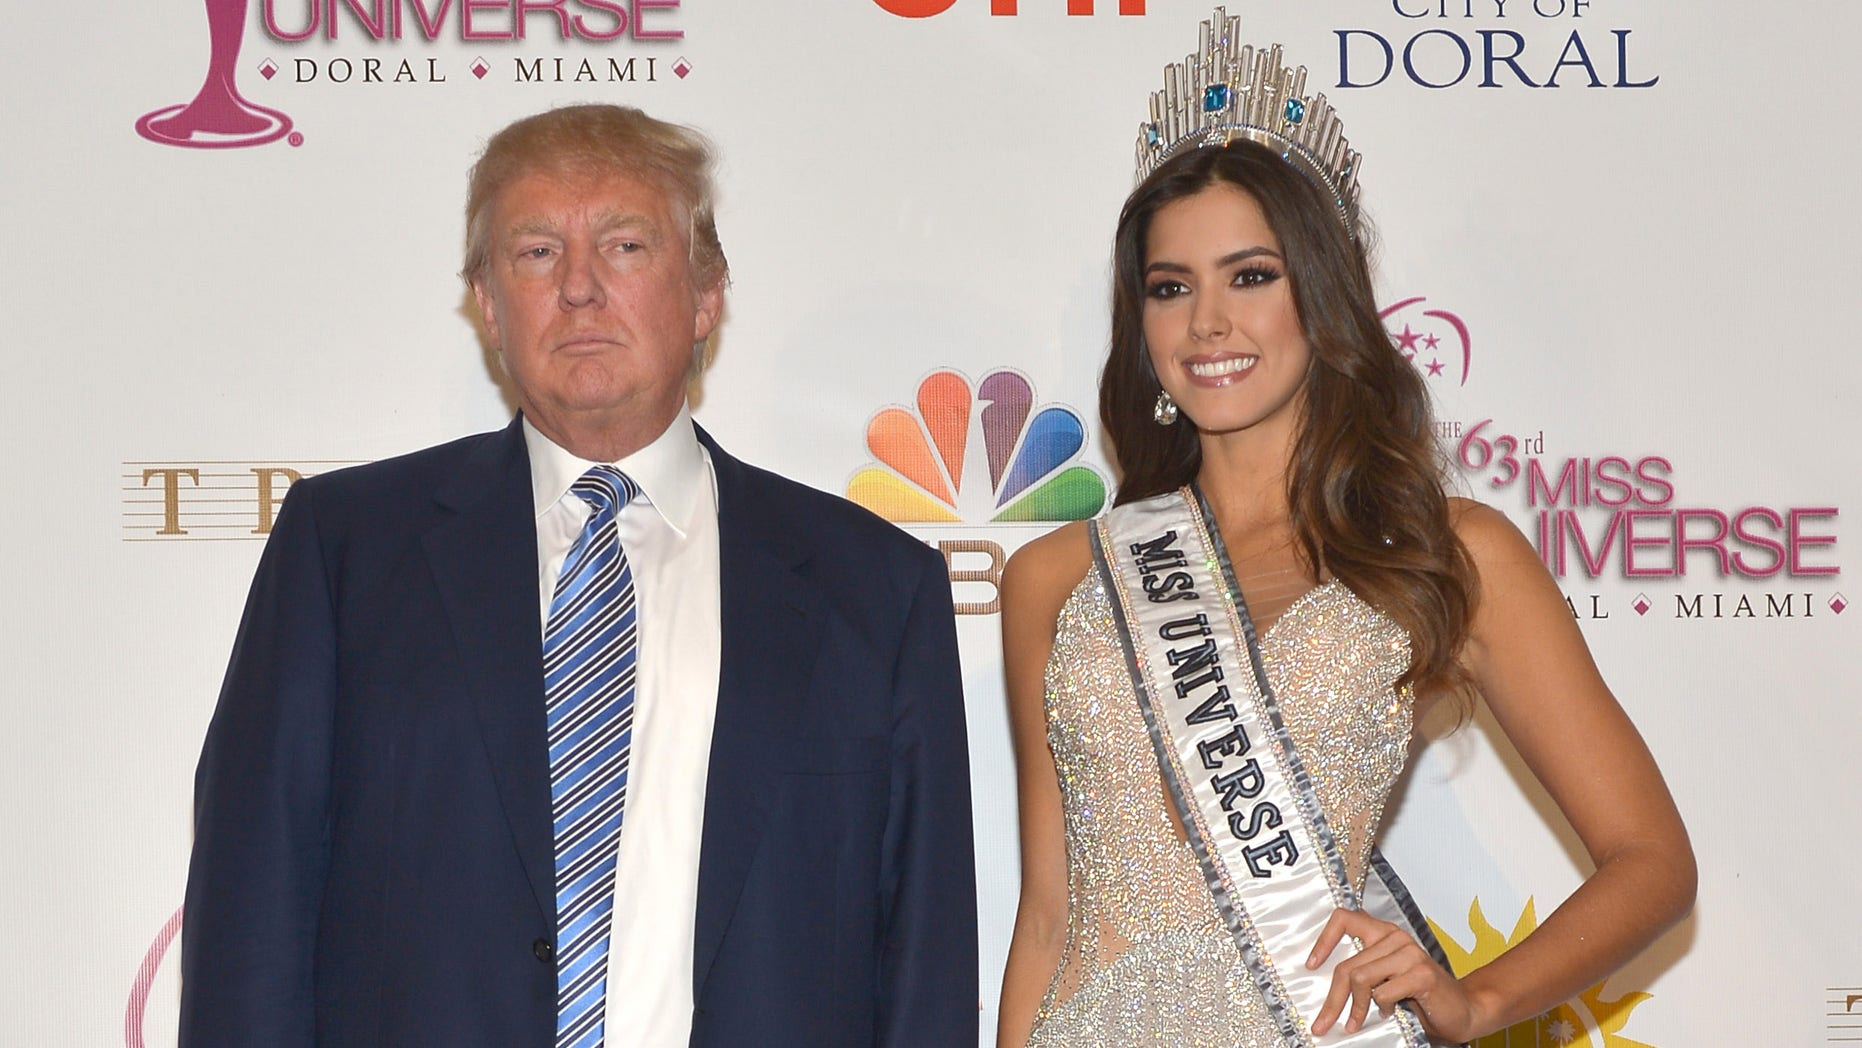 DORAL, FL - JANUARY 25: Donald Trump and Miss Universe Paulina Vega attend The 63rd Annual Miss Universe Pageant winner press conference at Trump National Doral on January 25, 2015 in Doral, Florida. (Photo by Rodrigo Varela/Getty Images)